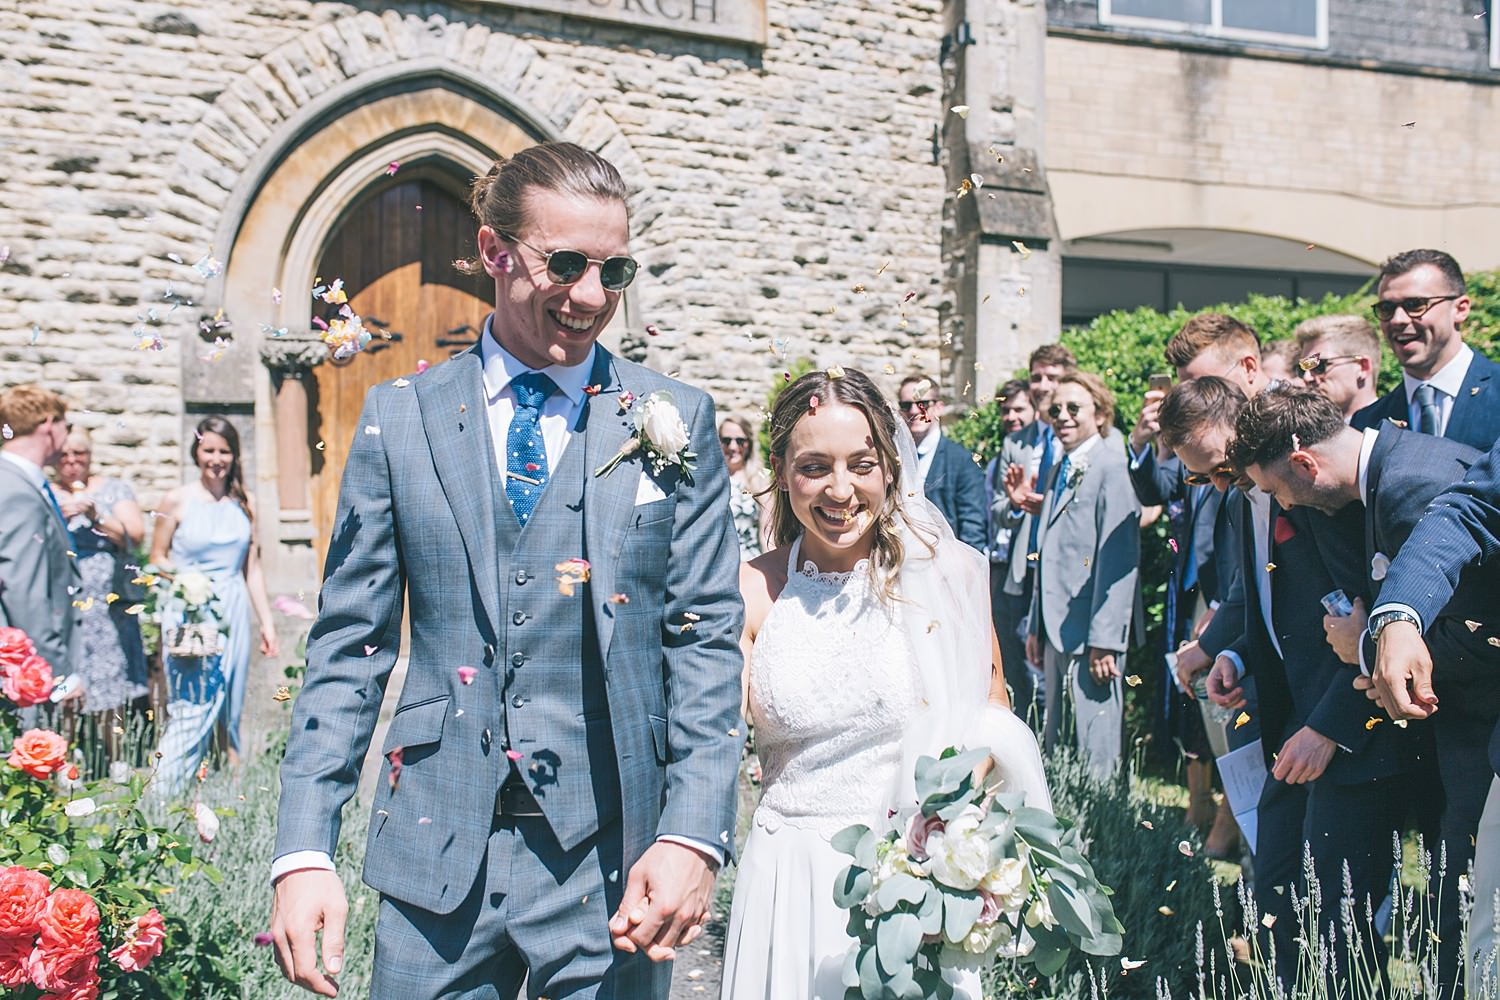 Cornwall wedding photographer in Wiltshire Calne Free Church Wedding Photography